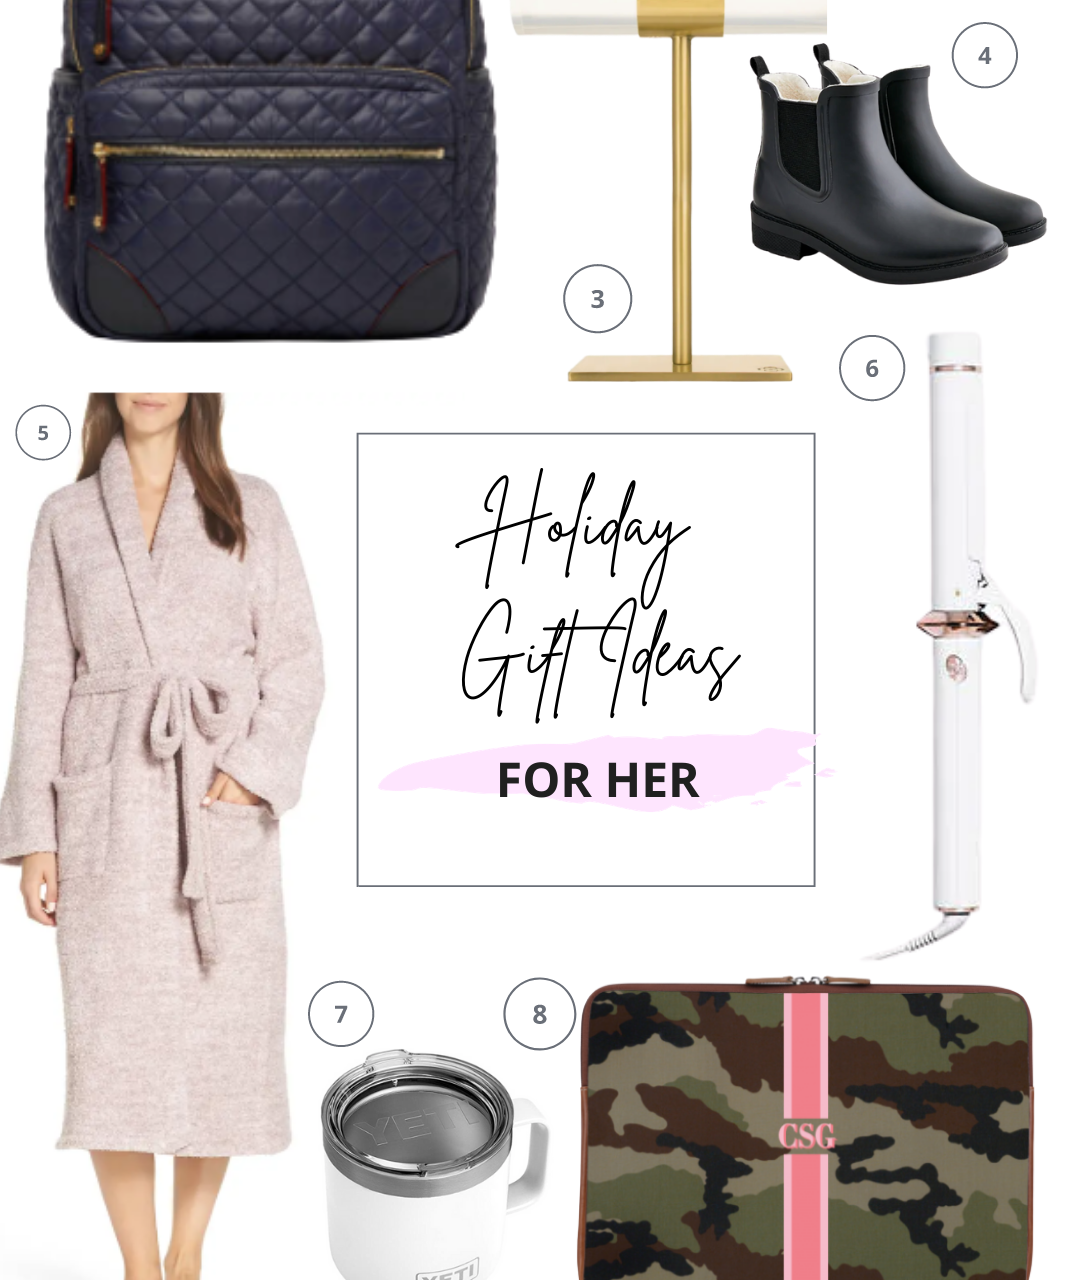 THE BEST HOLIDAY GIFT IDEAS FOR HER 2020